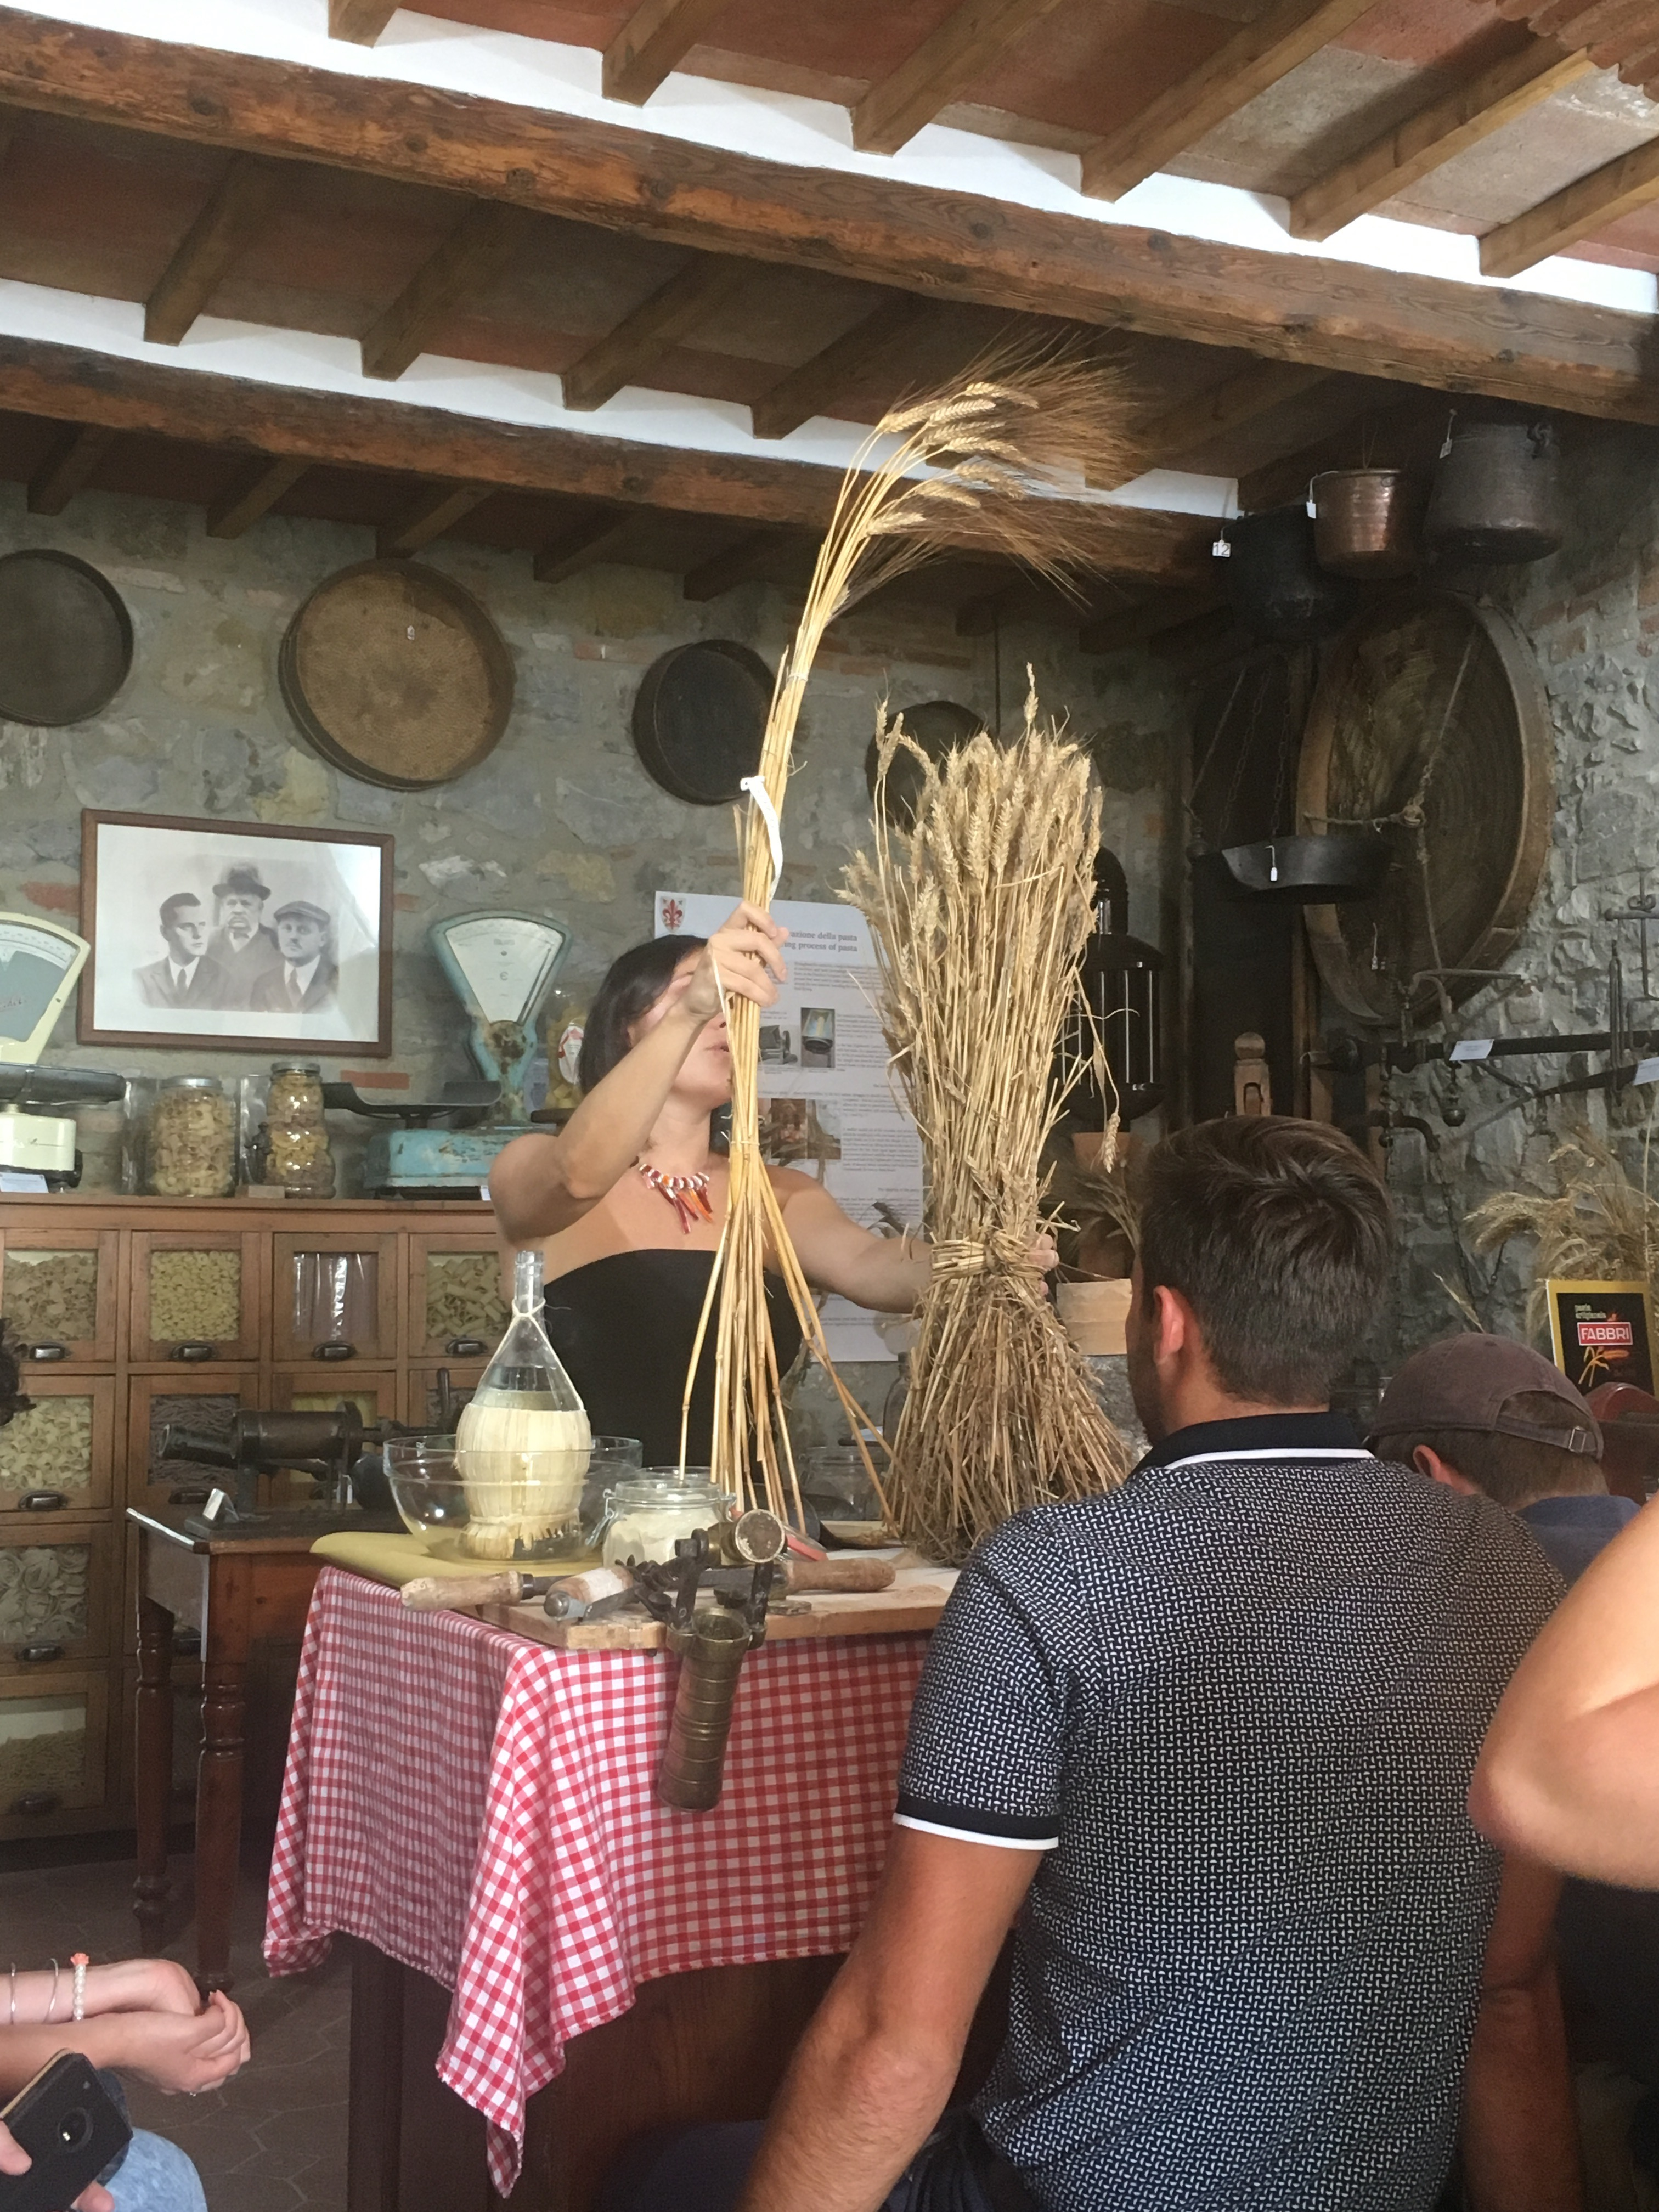 Grains play an important role in the pasta making process